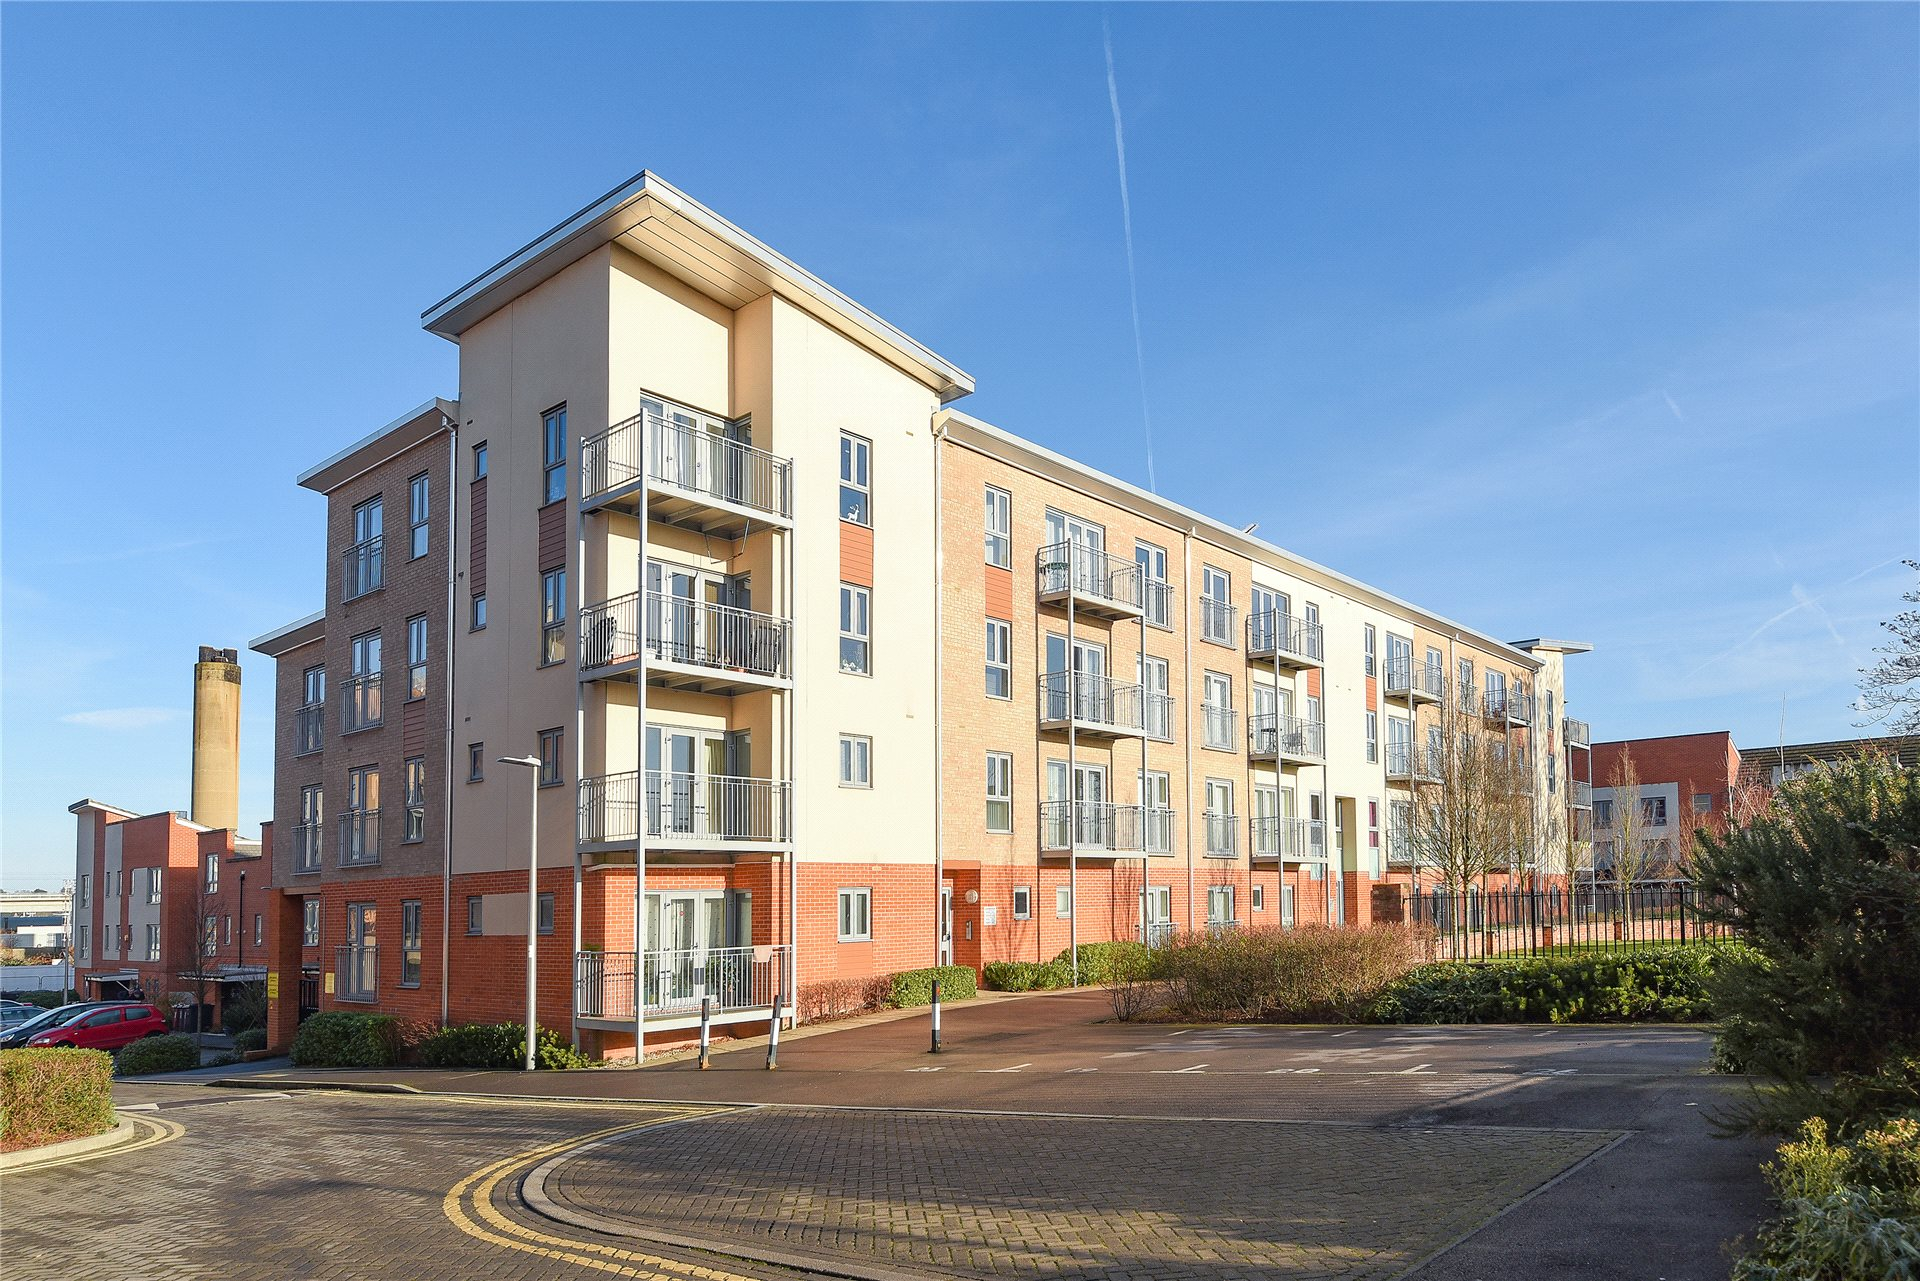 2 Bedrooms Apartment Flat for sale in Ashdown House, Battle Square, Reading, Berkshire, RG30